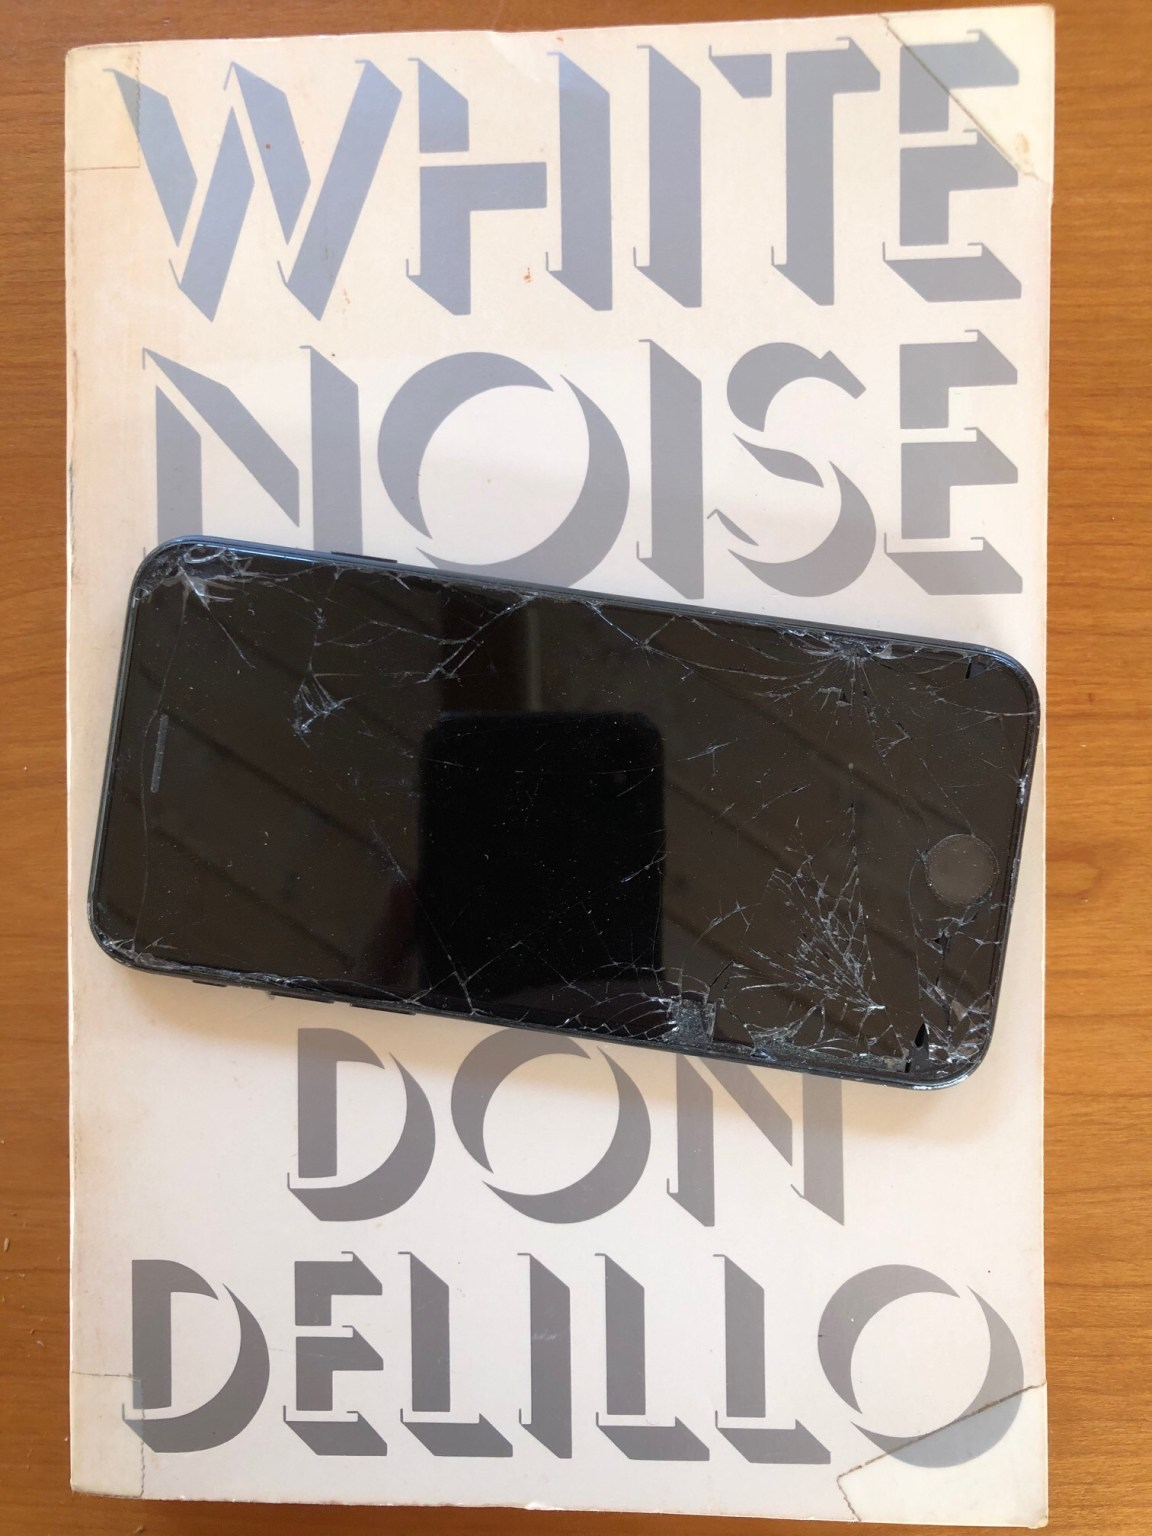 Tuning Into Don DeLillo's 'White Noise' in This Static Age